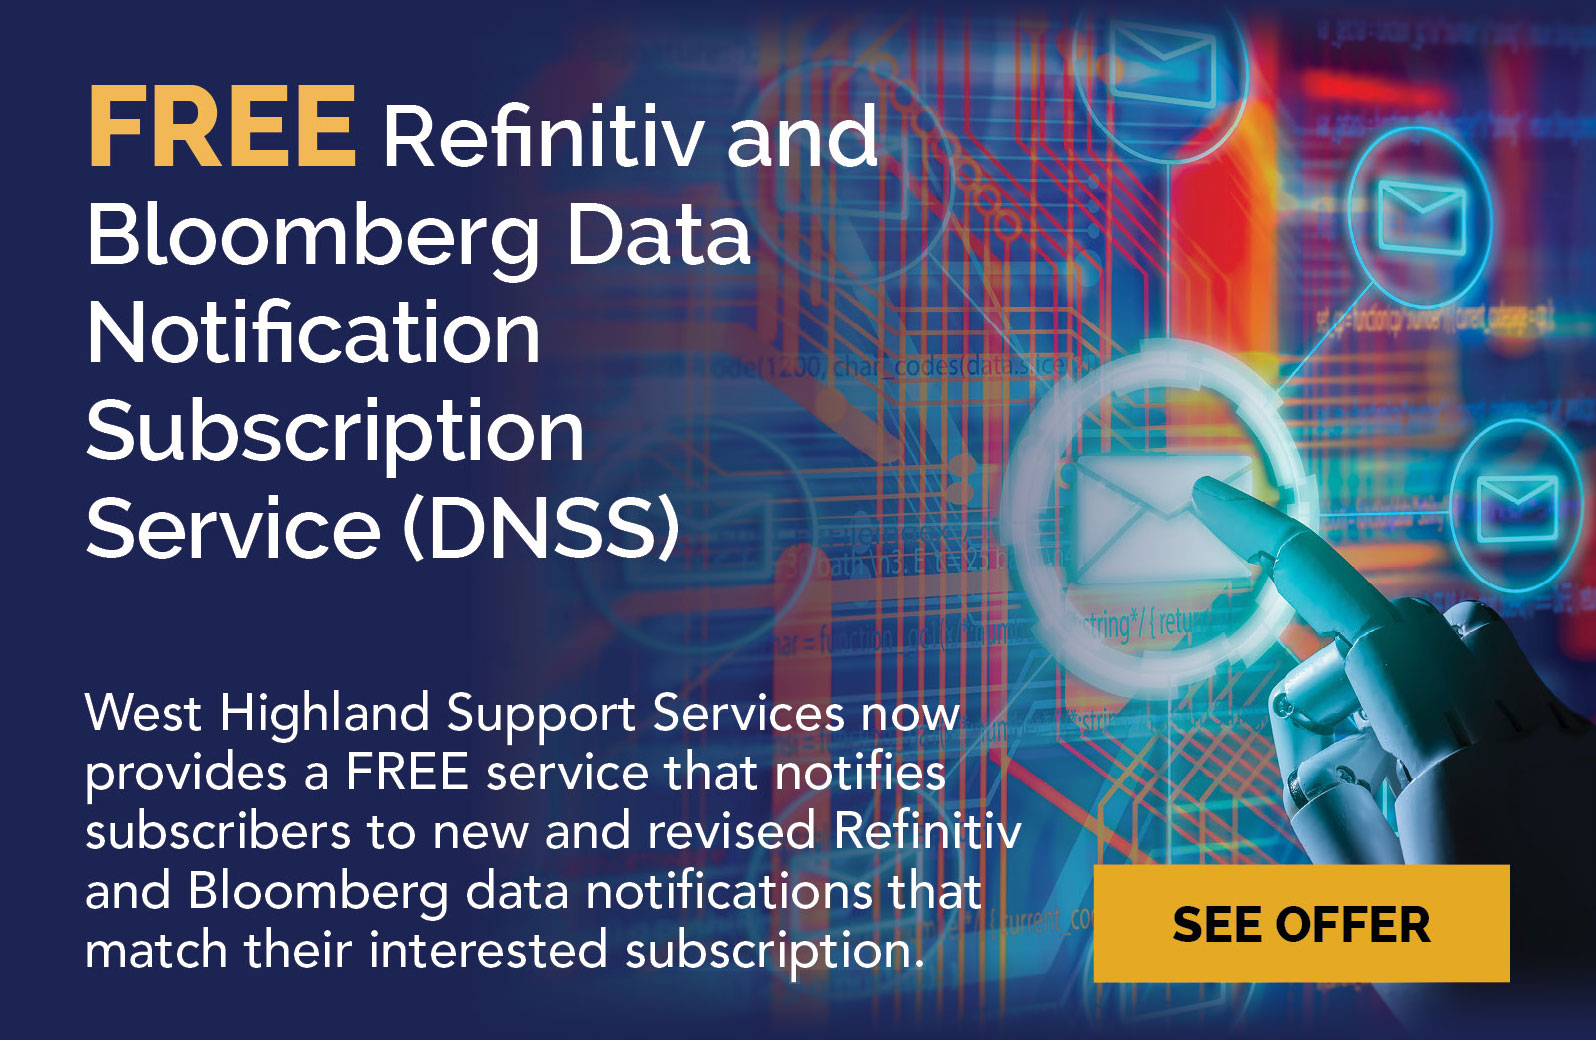 FREE Refinitiv and Bloomberg Data Notification Subscription Service (DNSS)